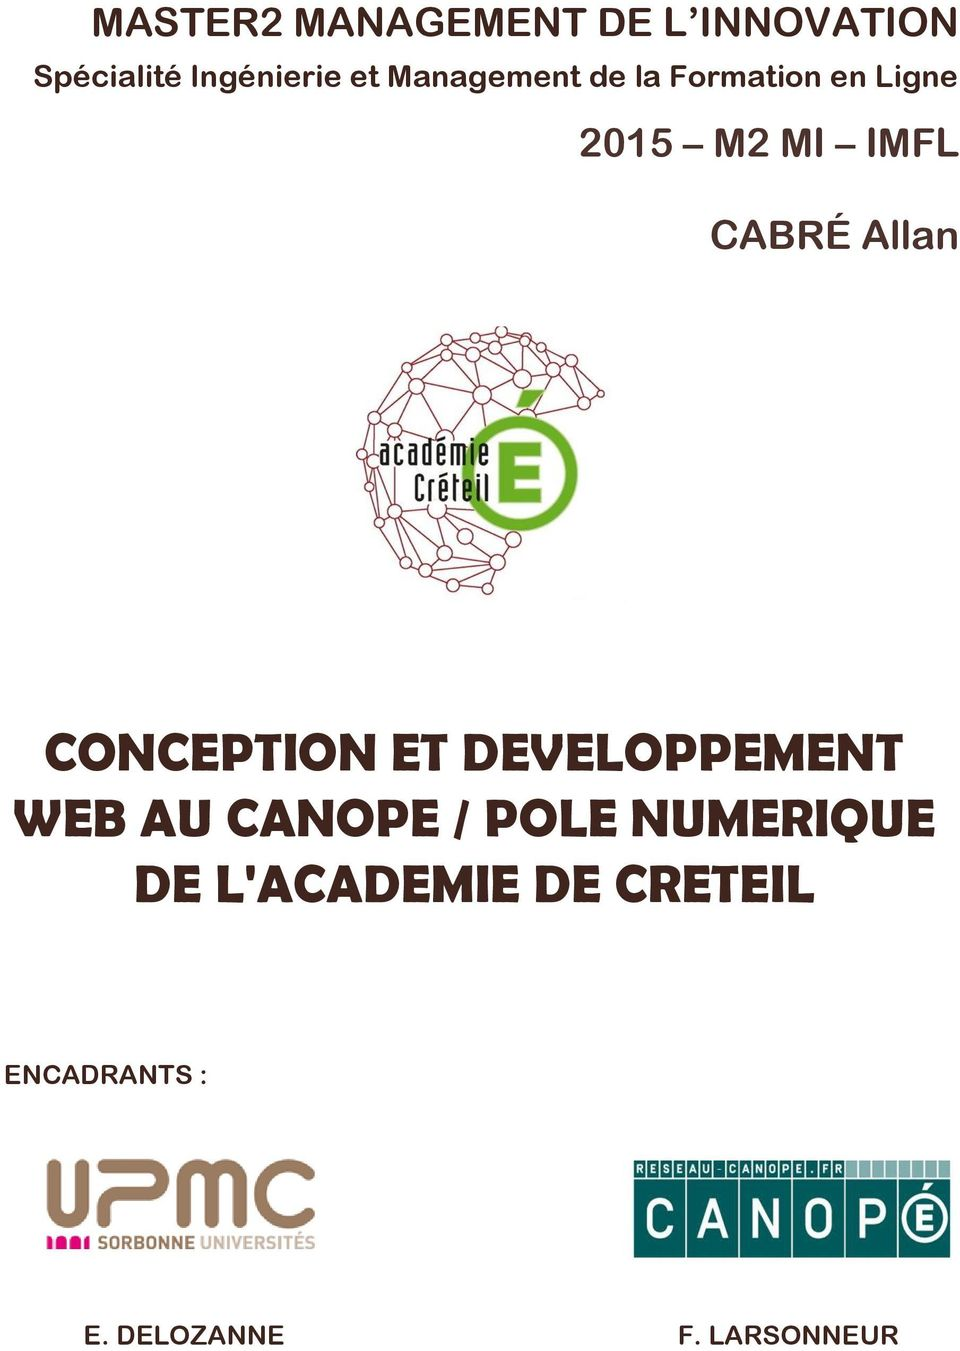 Allan CONCEPTION ET DEVELOPPEMENT WEB AU CANOPE / POLE